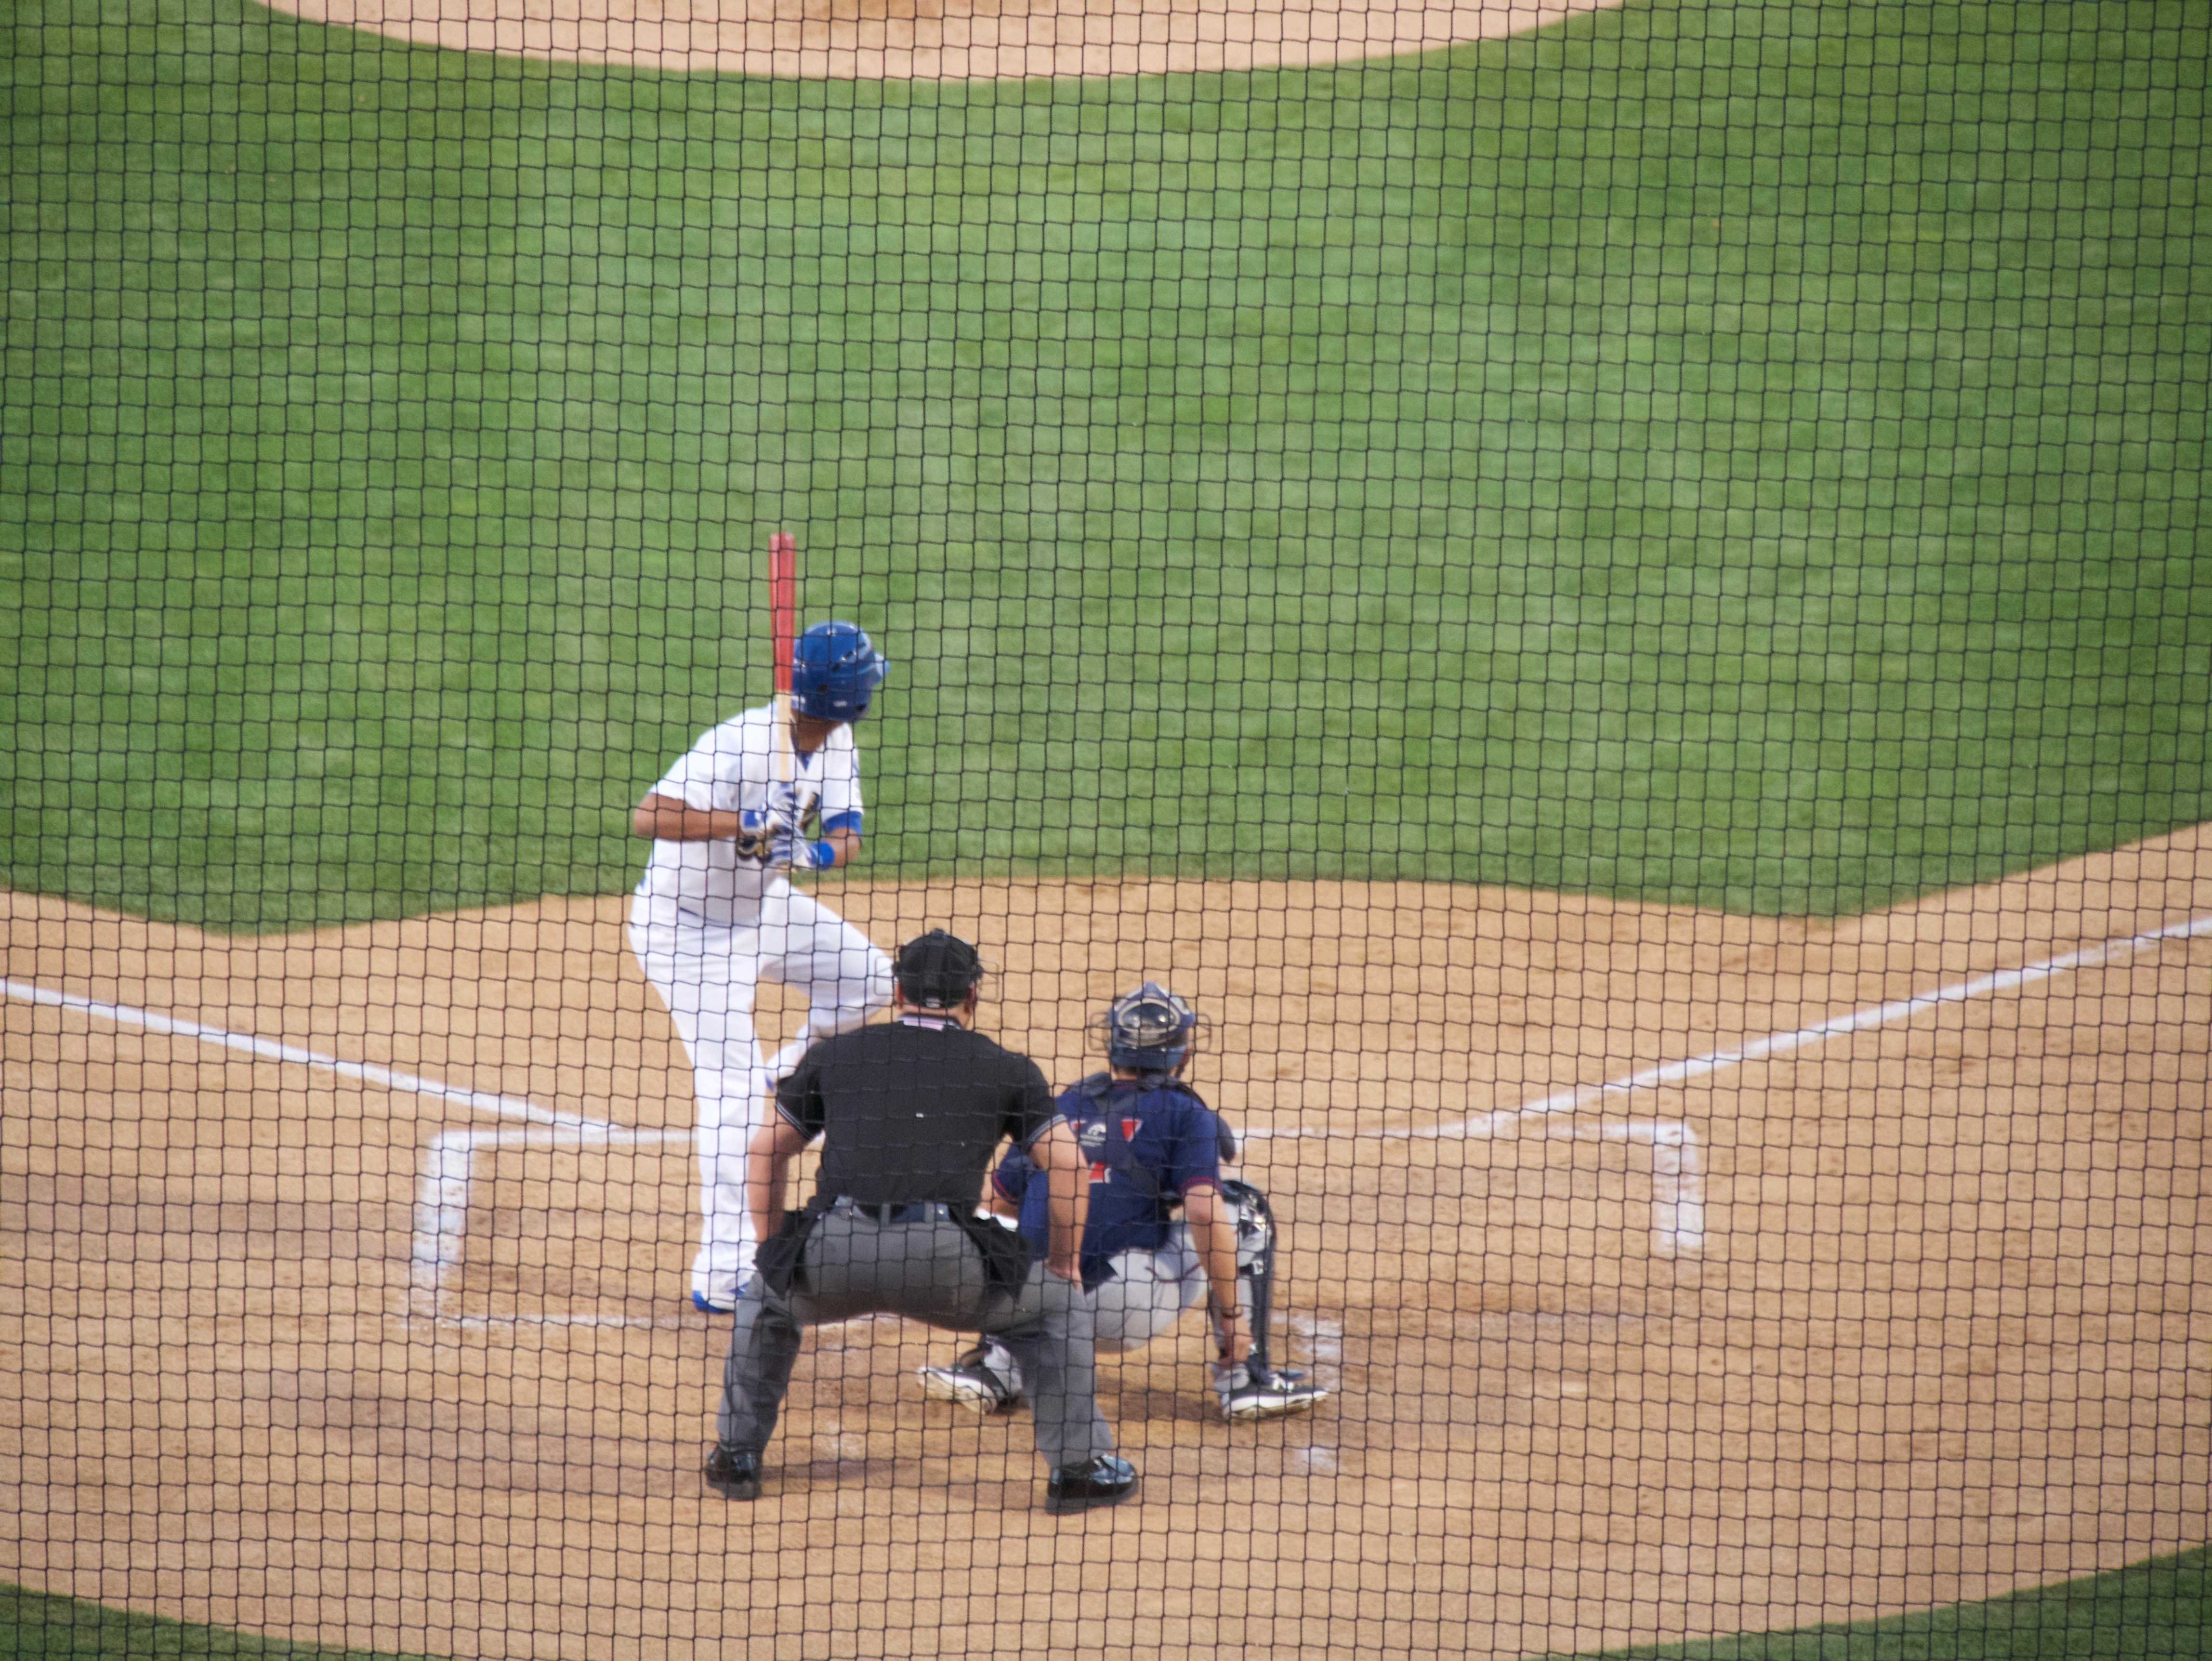 Ariel Sandoval at the plate on Saturday night